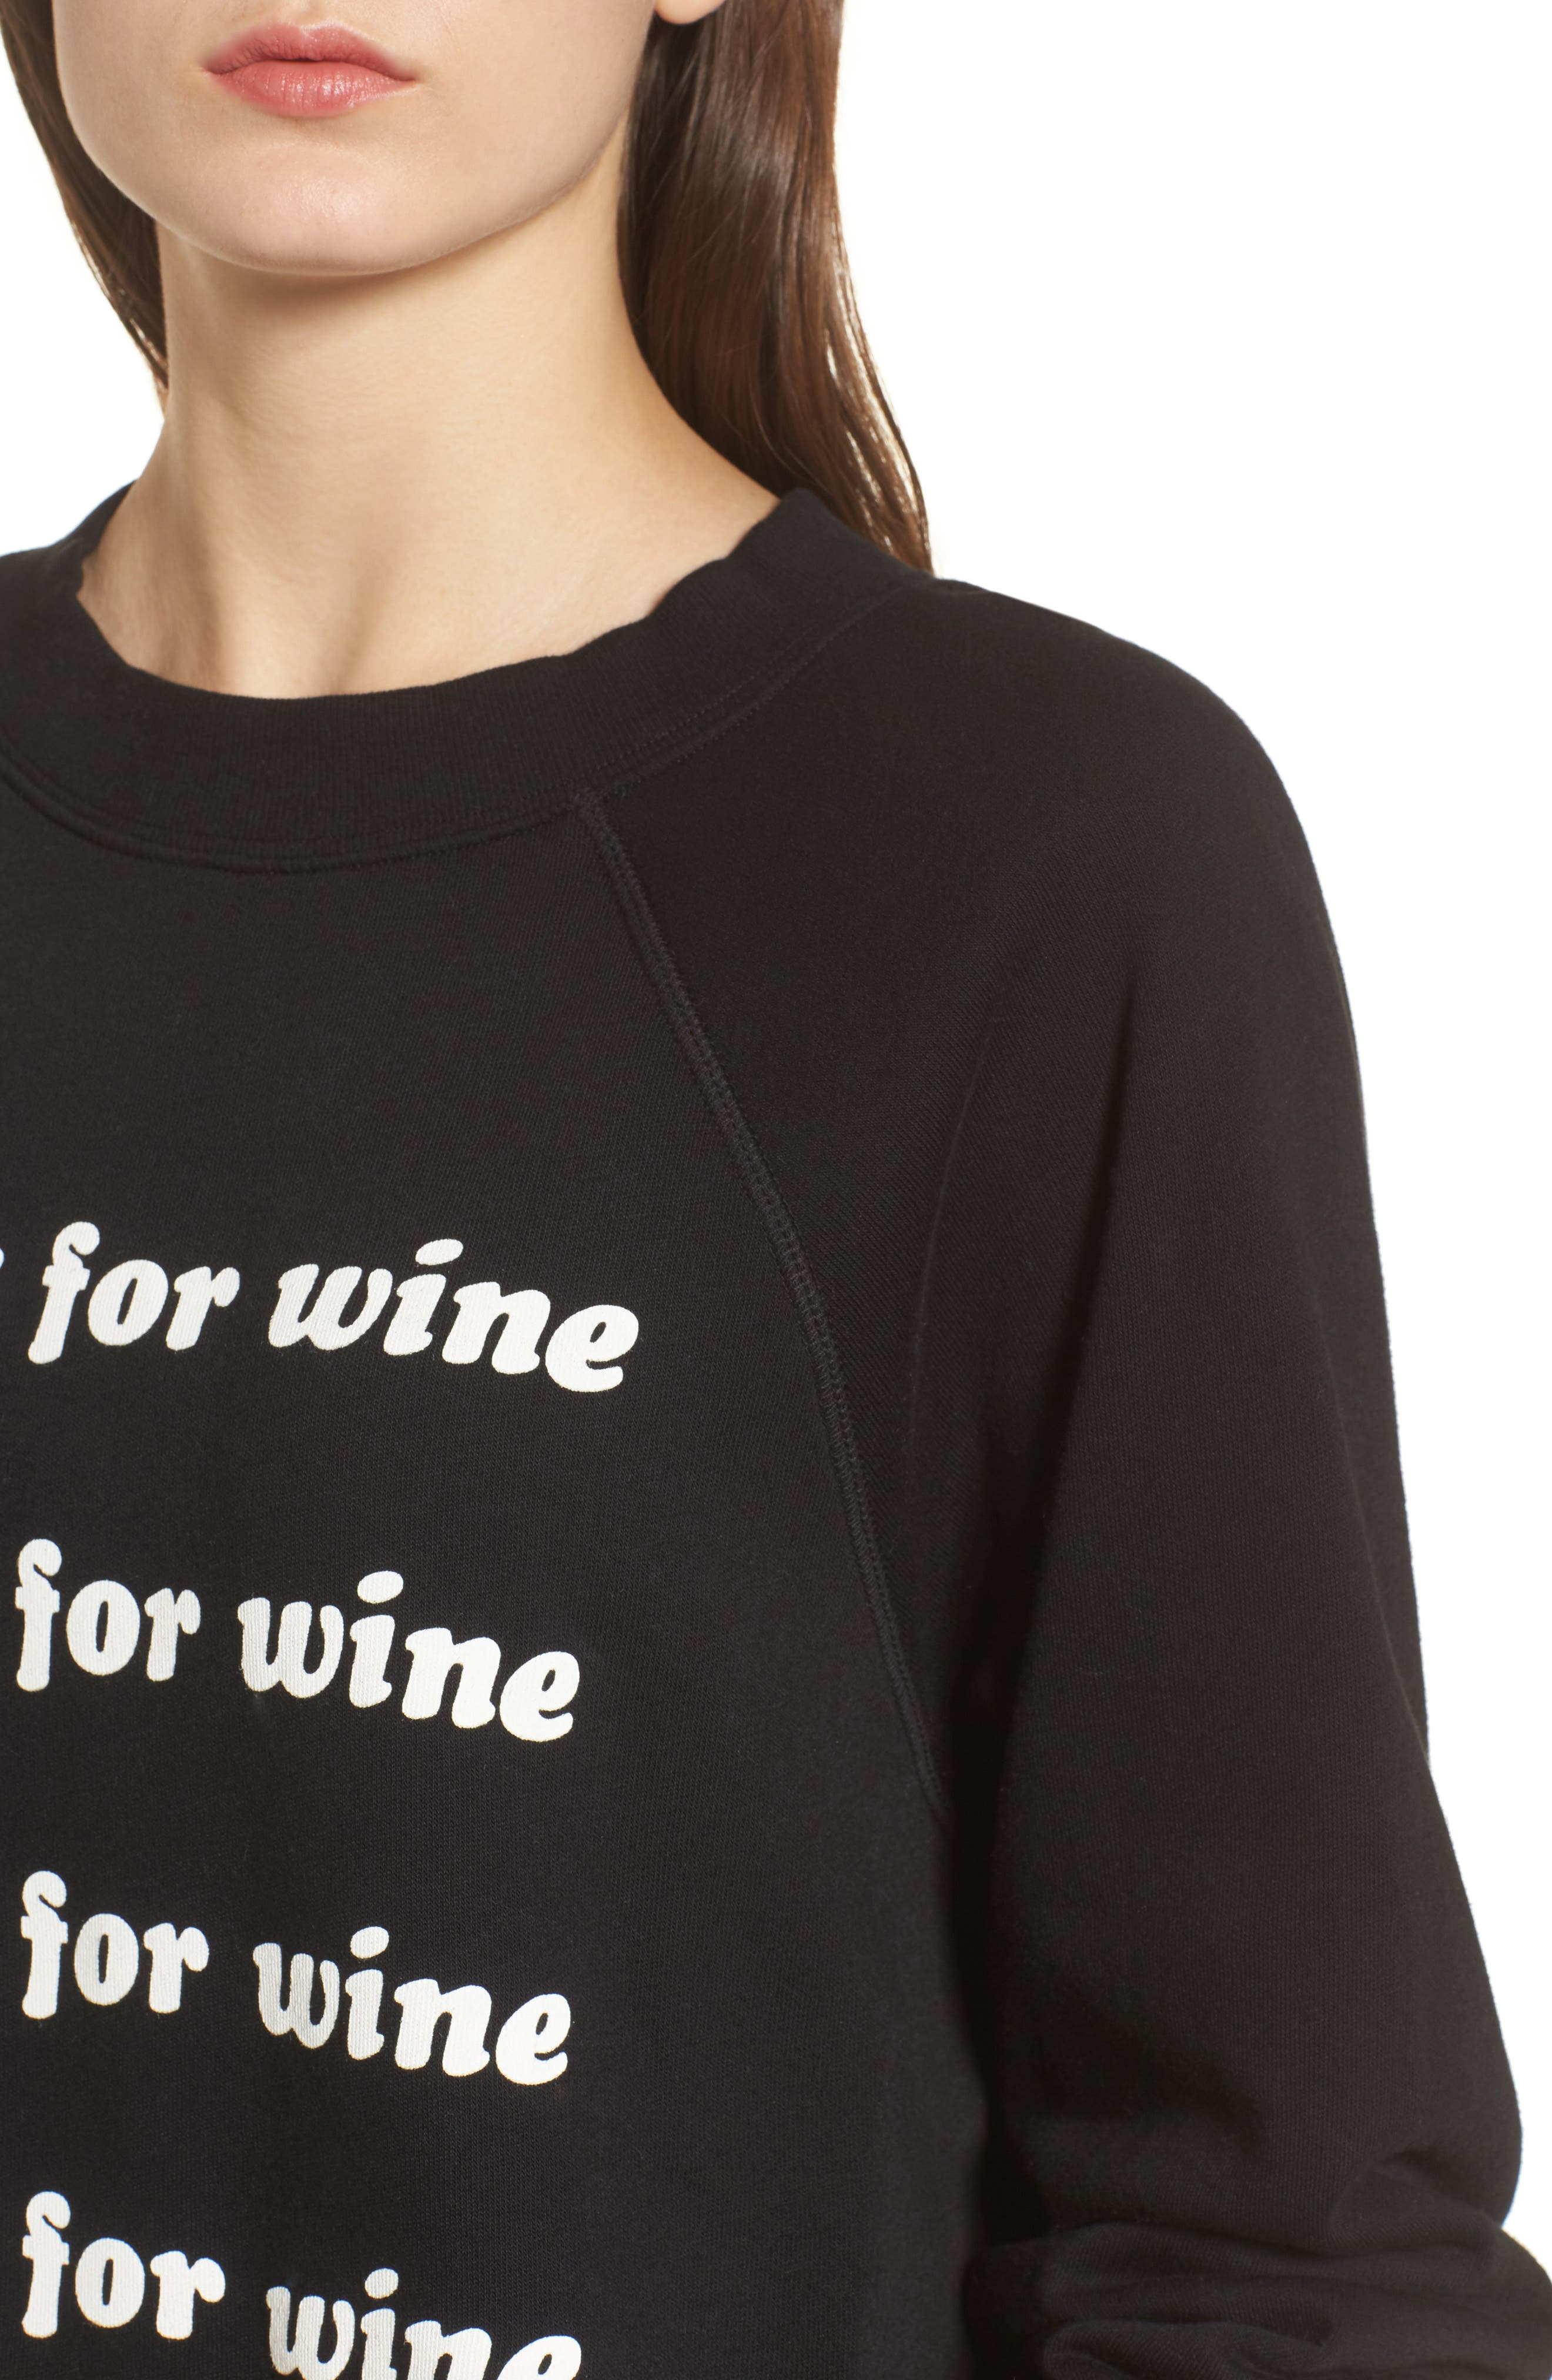 Wino - Sommers Sweatshirt,                             Alternate thumbnail 4, color,                             001